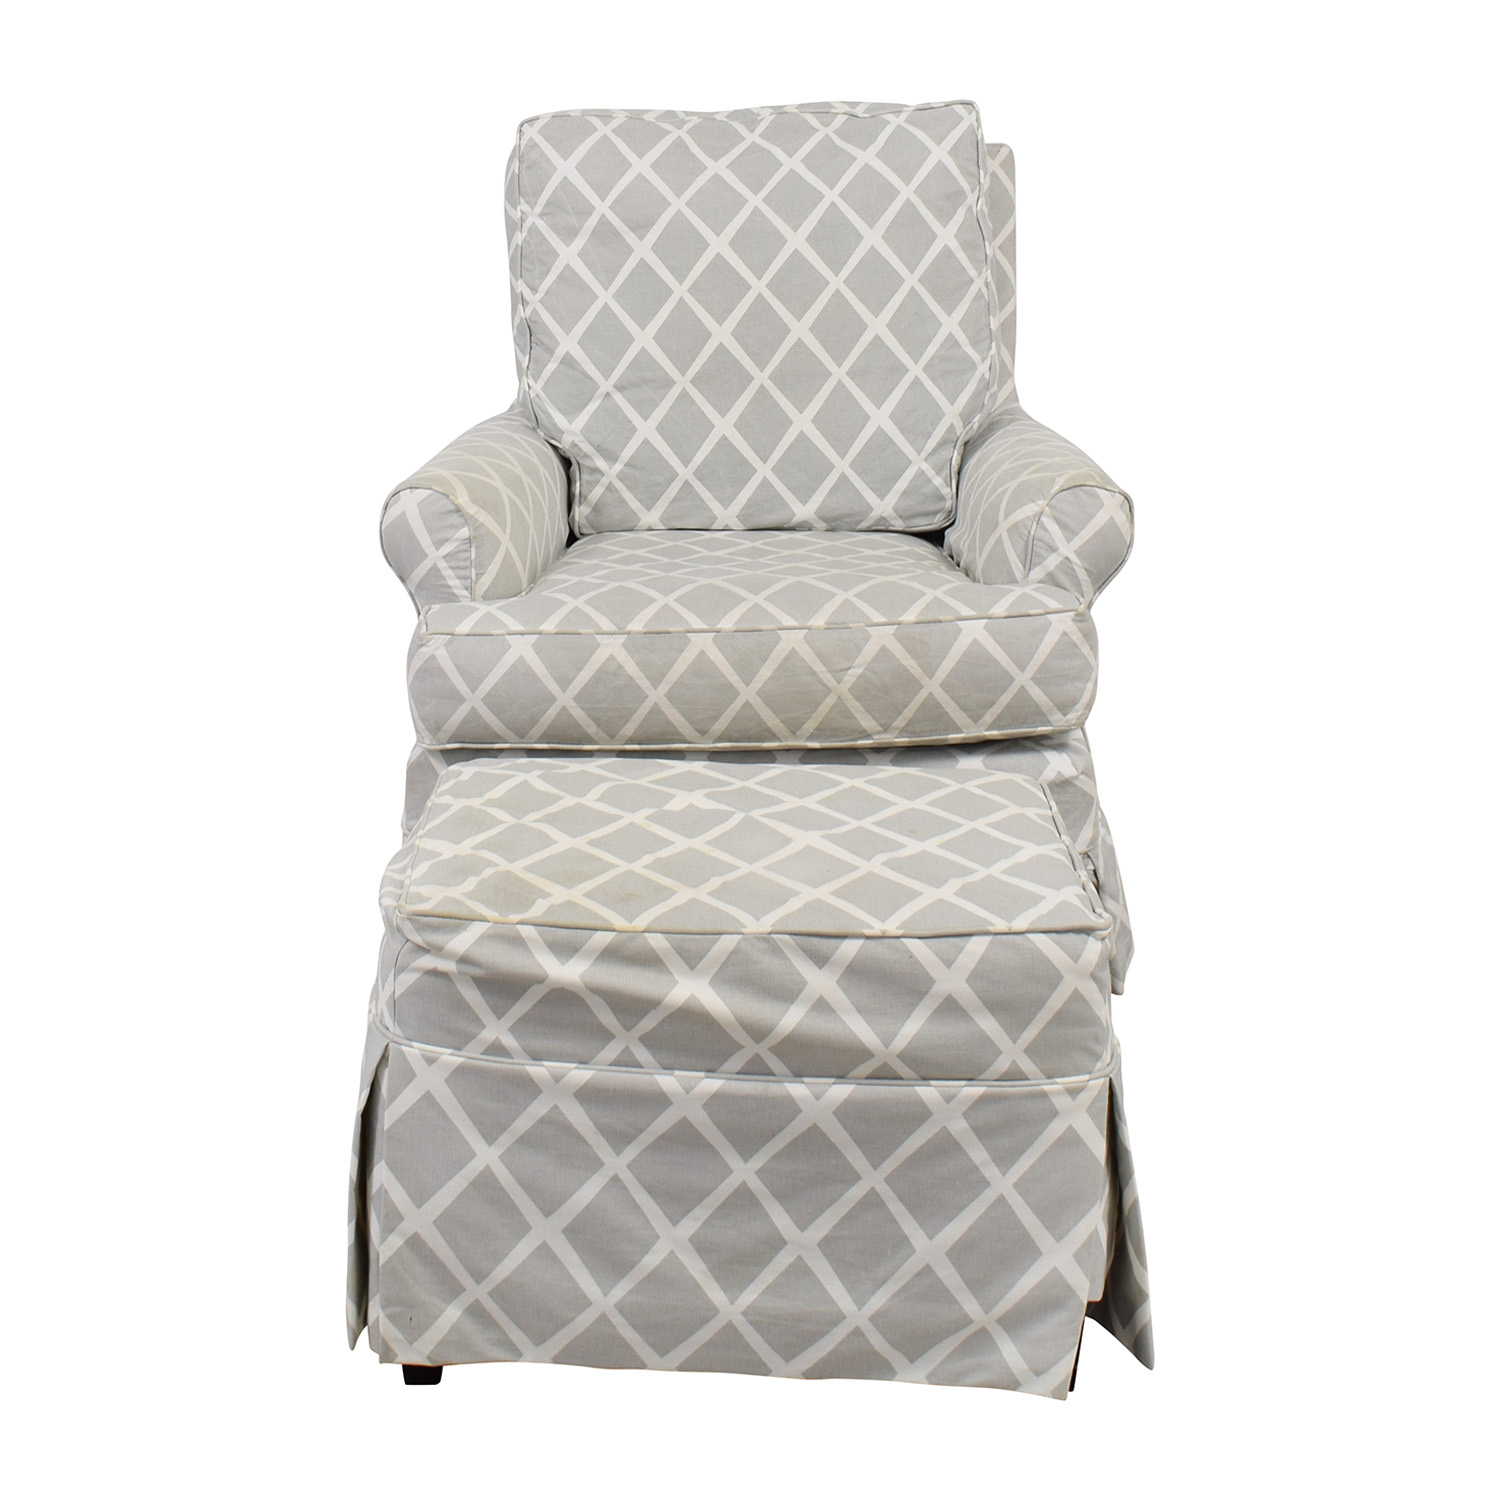 Serena and Lily Serena and Lily Grey and White Glider and Ottoman nj